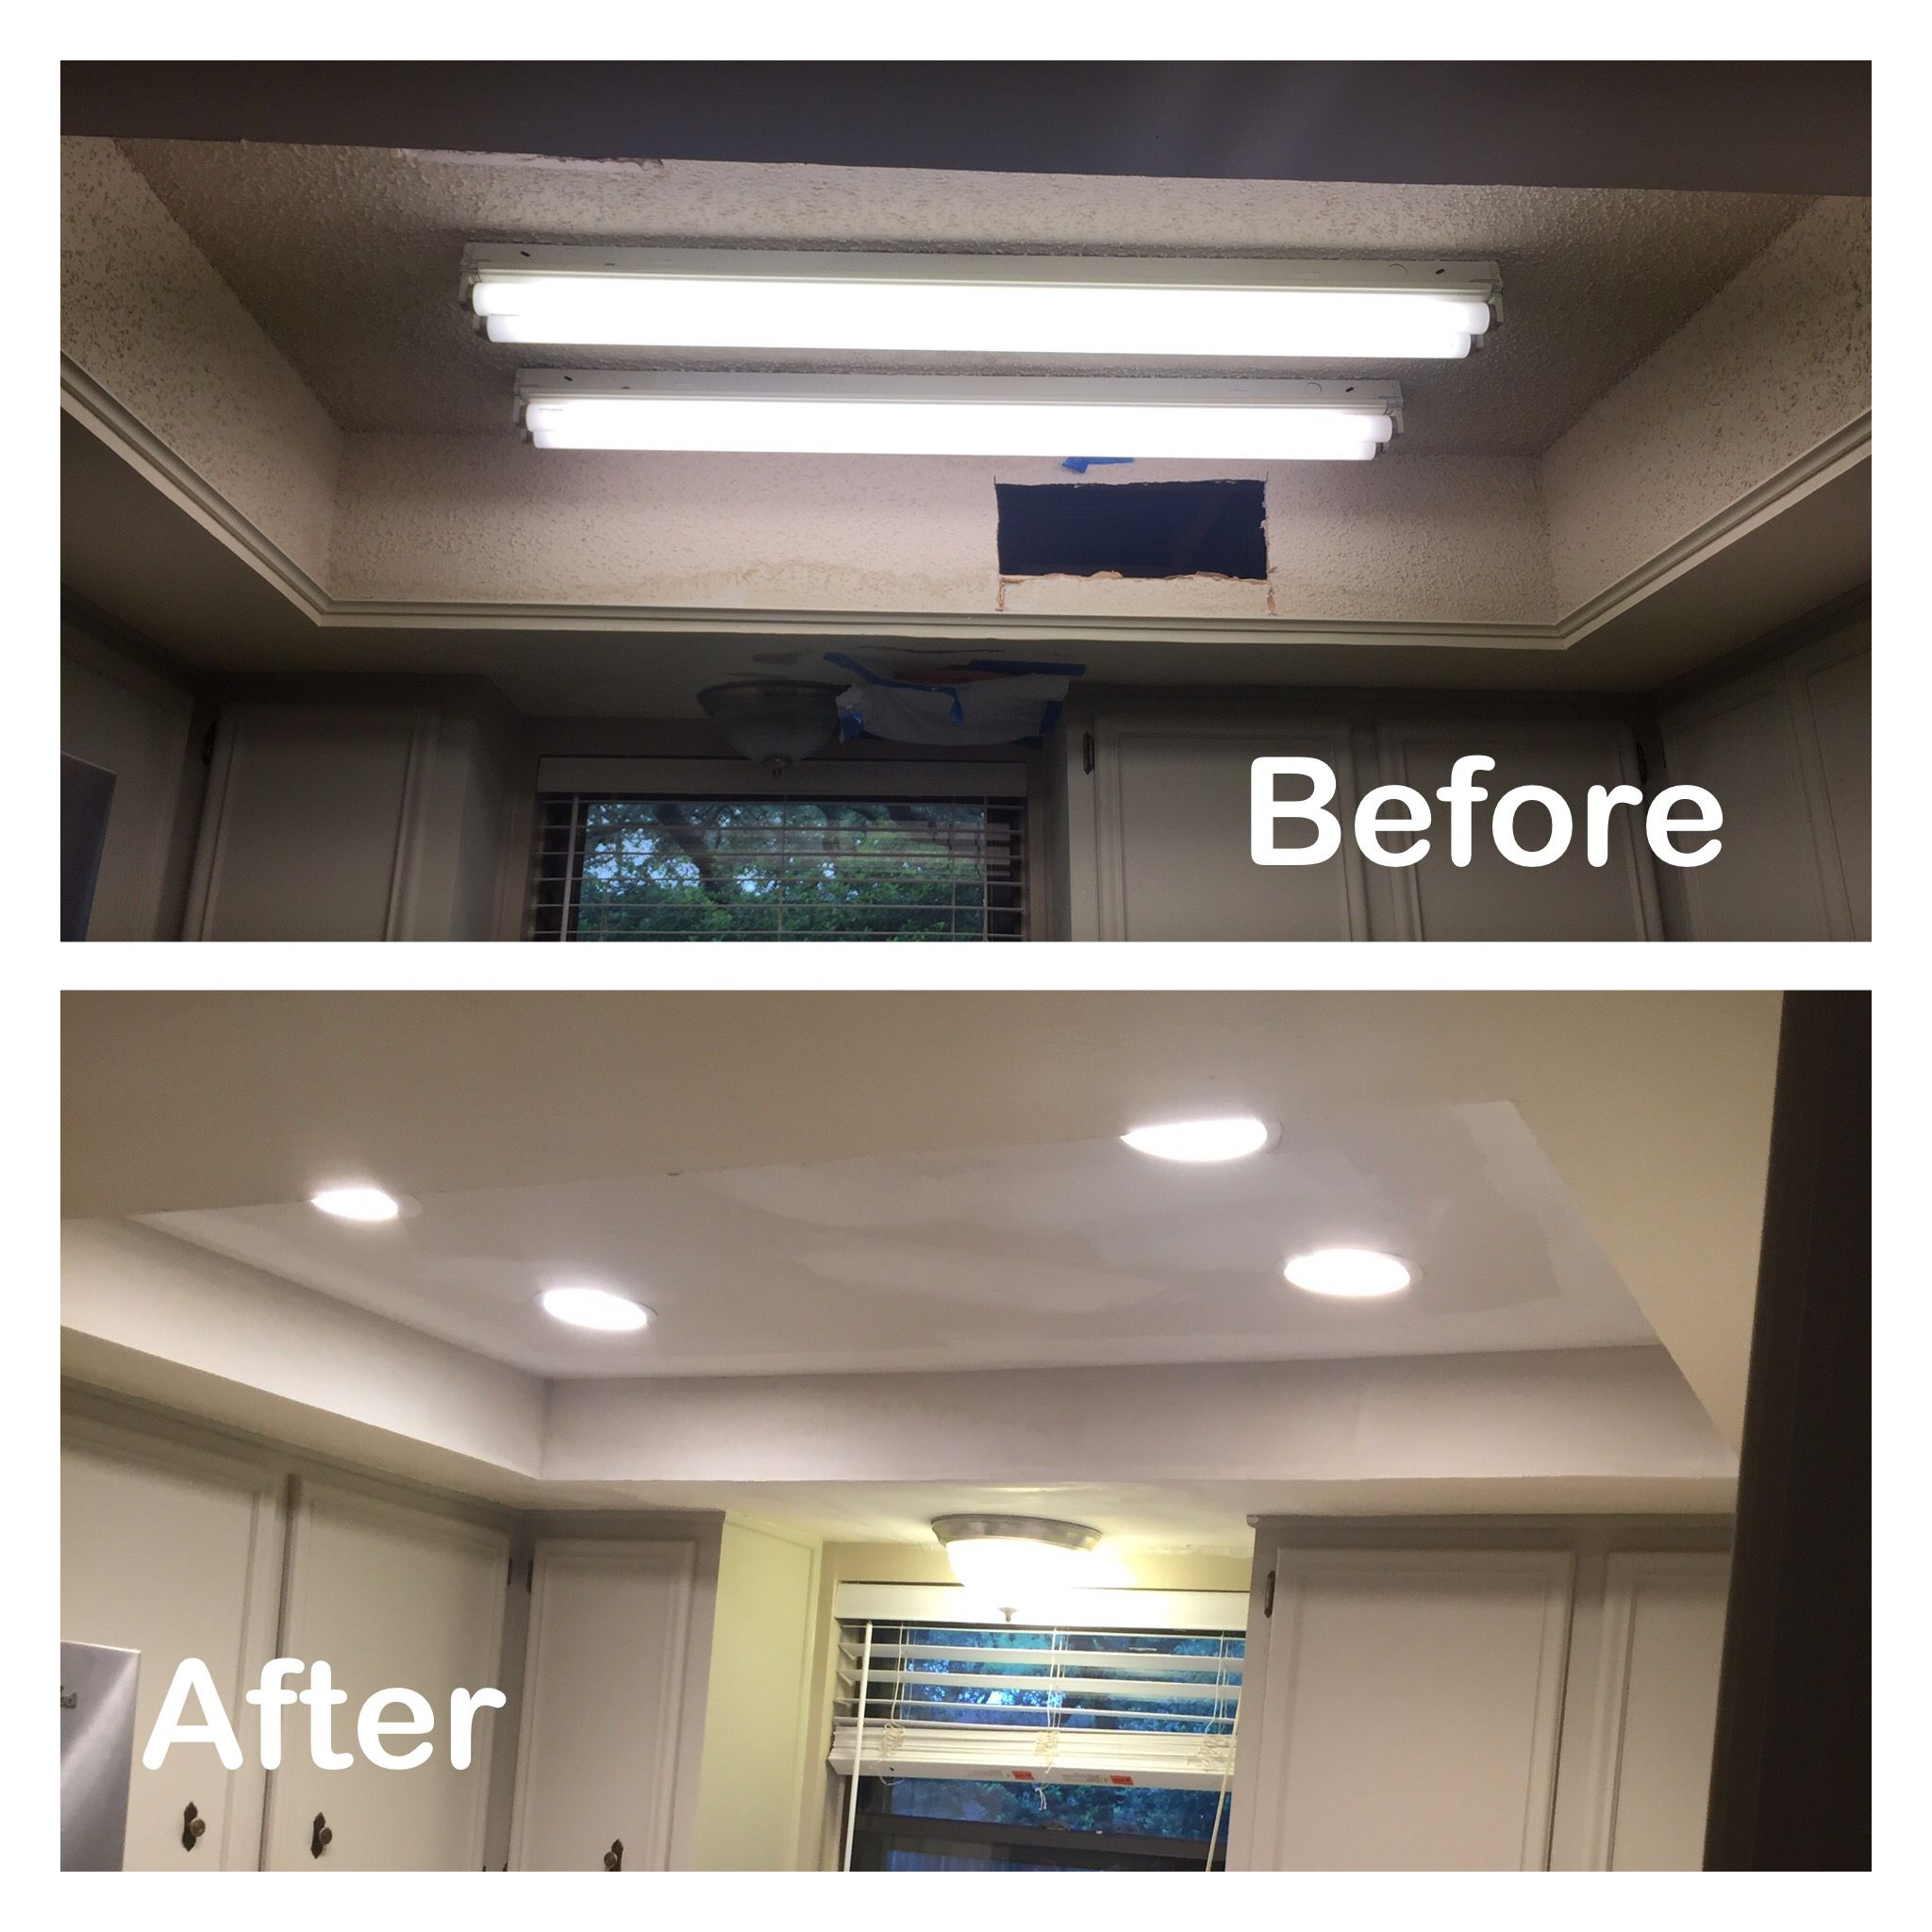 1970s Kitchen Light Box Before And After Fluorescent Light Removed